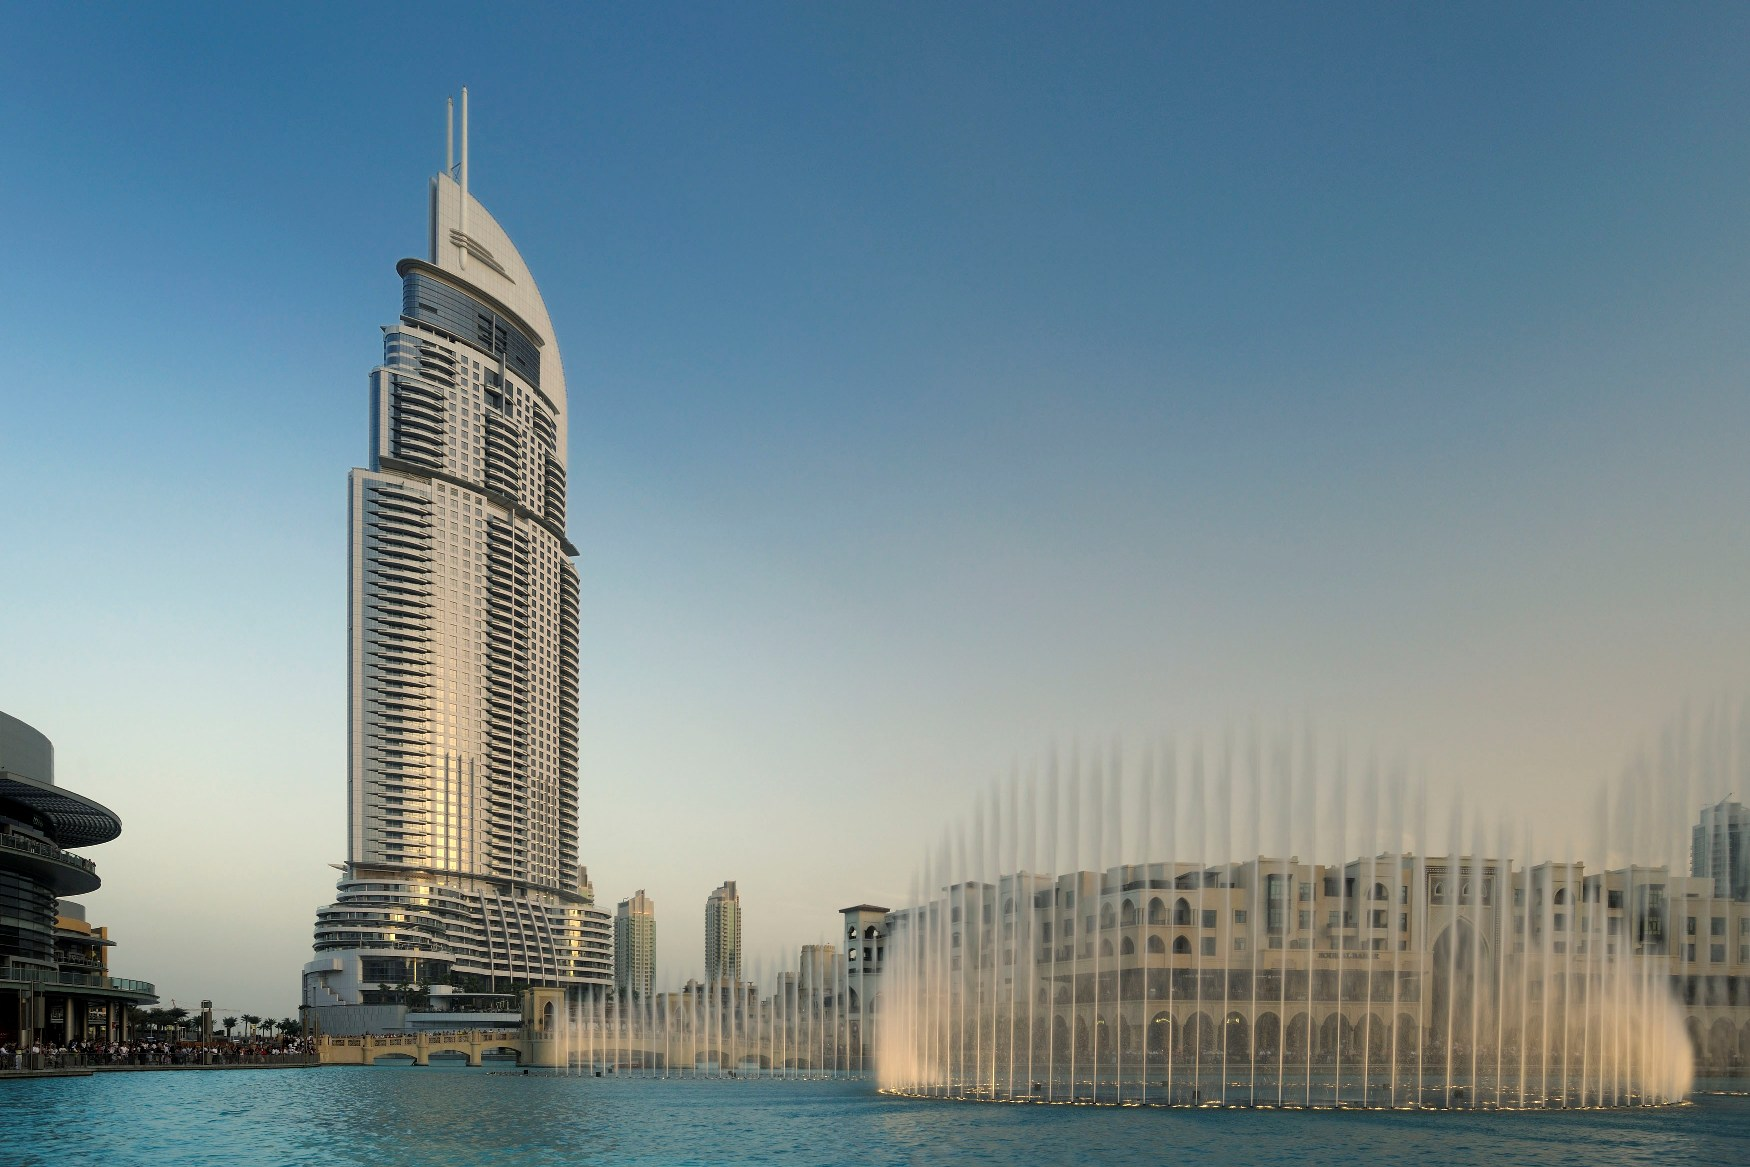 The grand hotels located inside the burj khalifa sagmart for Address hotel dubai